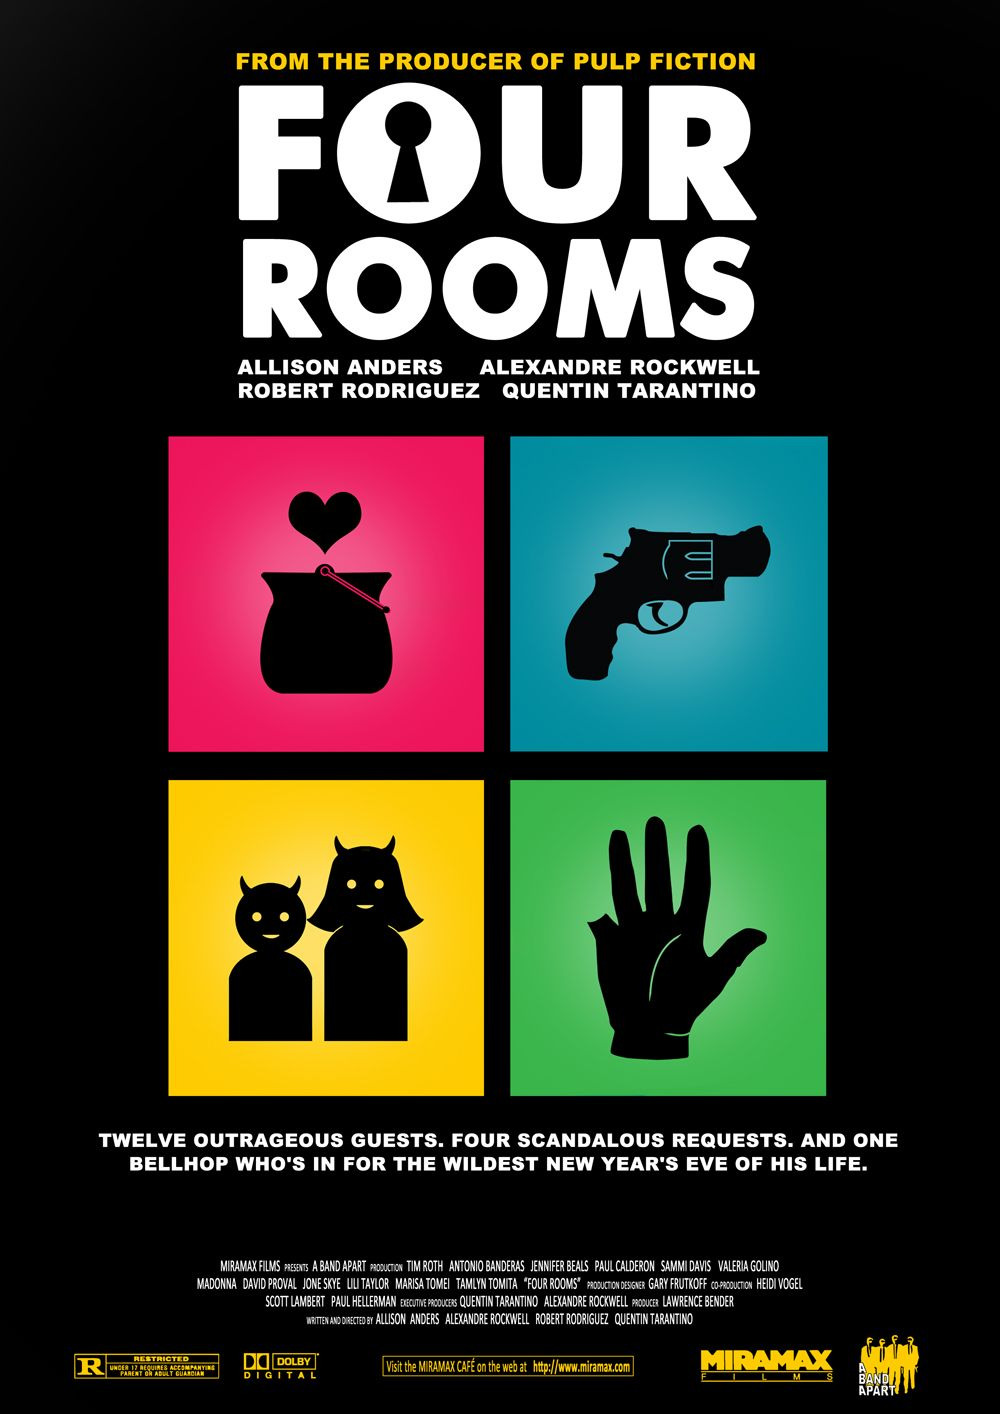 Four Rooms - Hilarious !